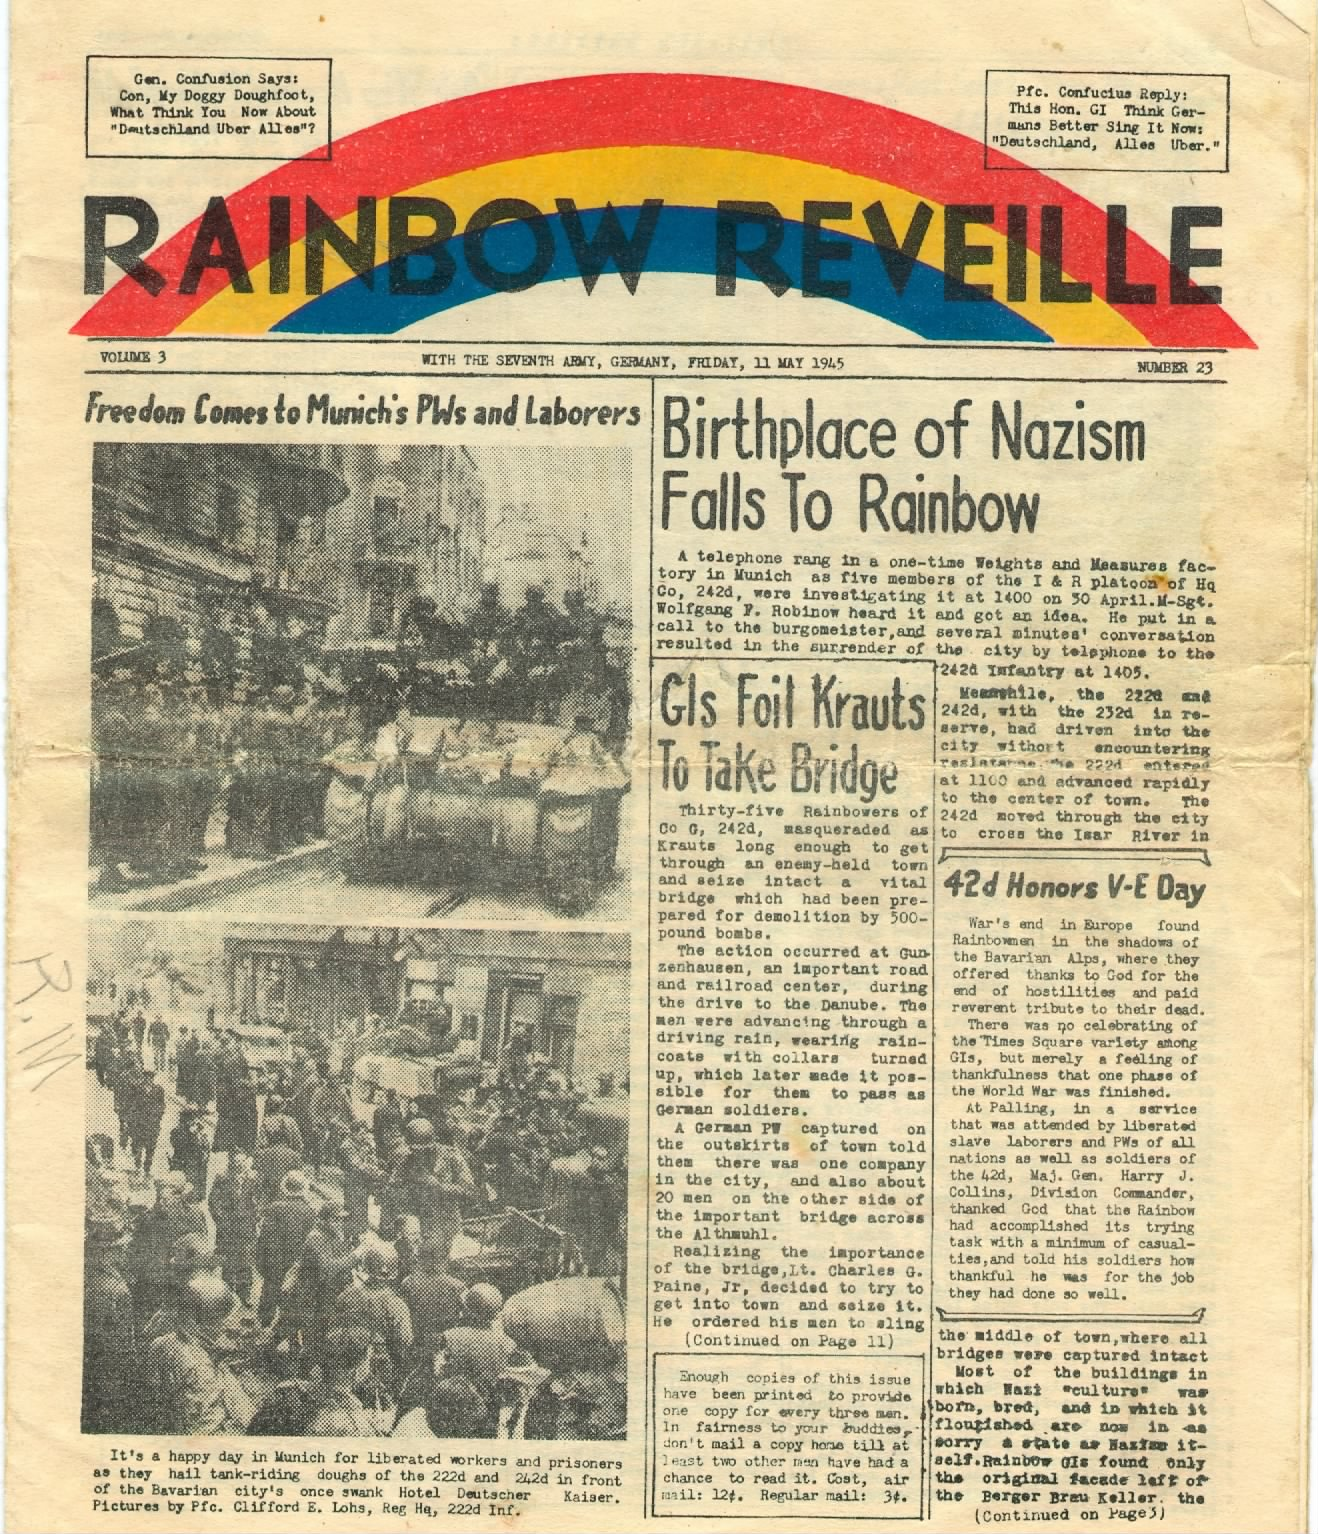 Rainbow Reveille - May 11, 1945, Story of 42_nd Rainbow Division Liberation of Dachau.jpg